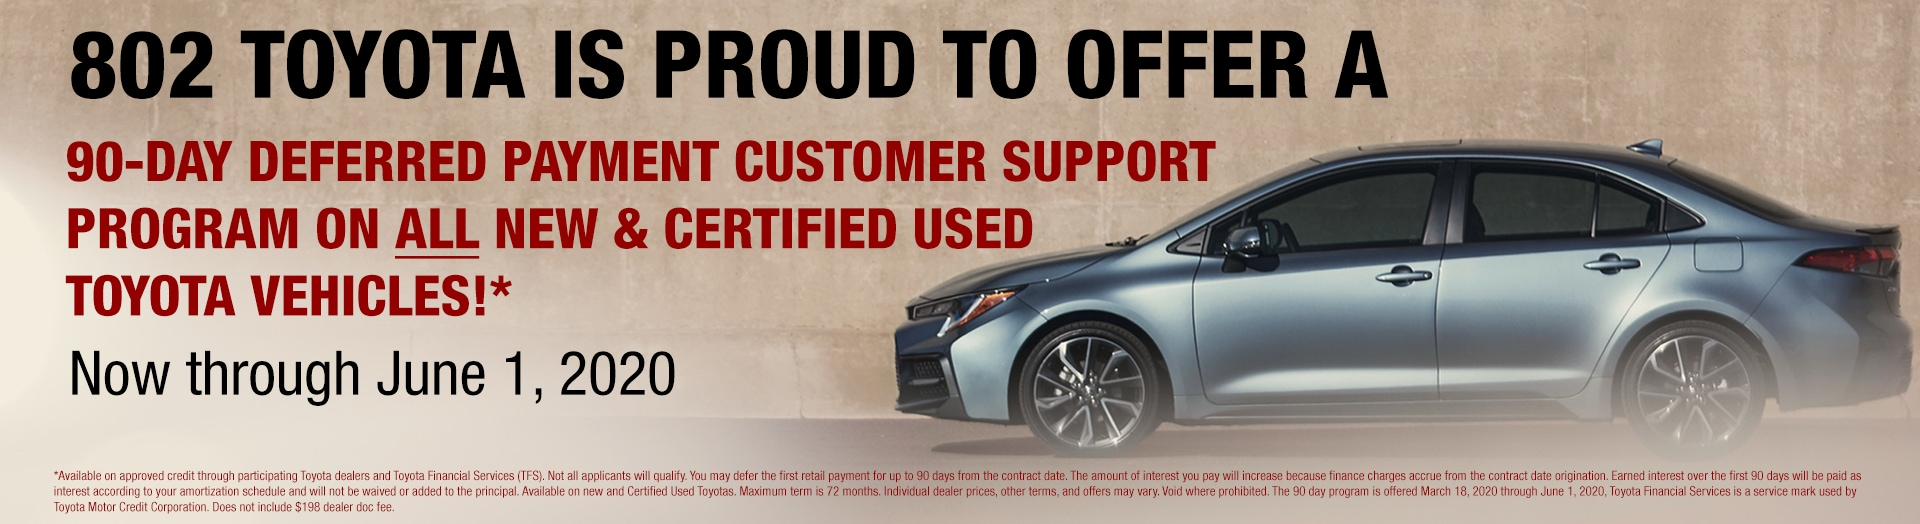 Toyota 90 Day deferment